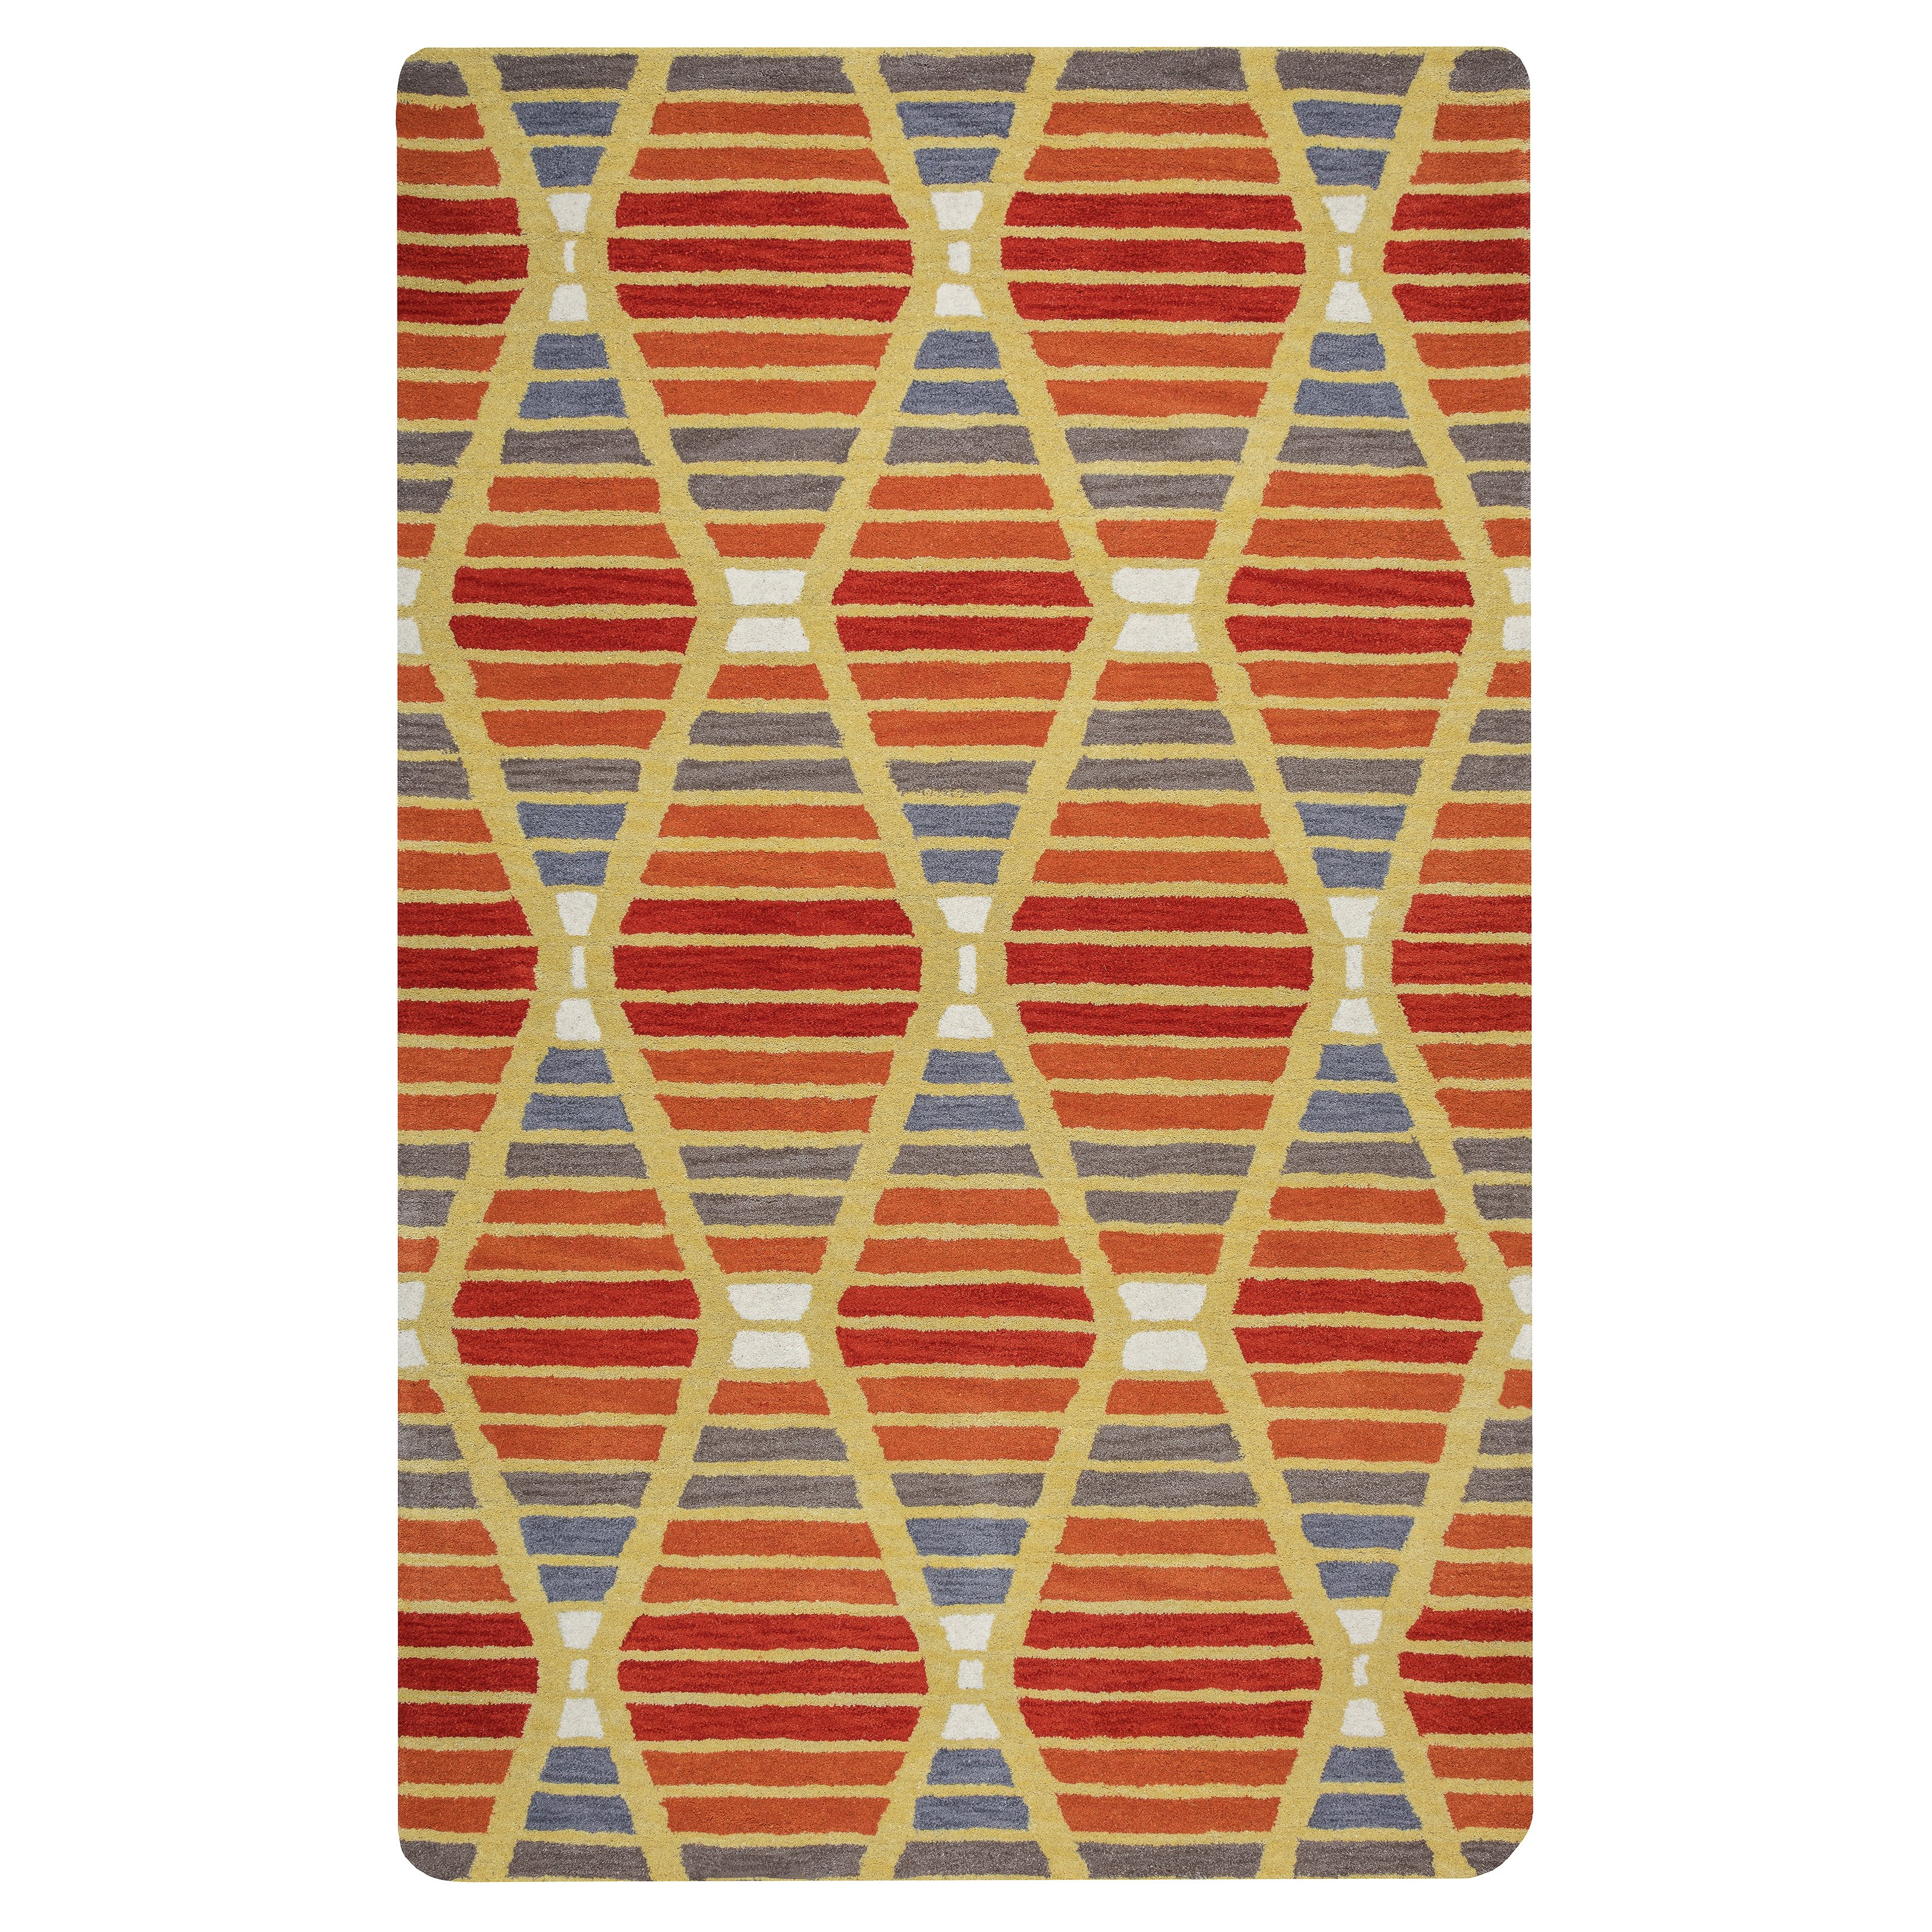 Rizzy Home Marianna Fields Hand-Tufted Area Rug 9 Ft. X 12 Ft. Multicolored Model MARMF952060330912